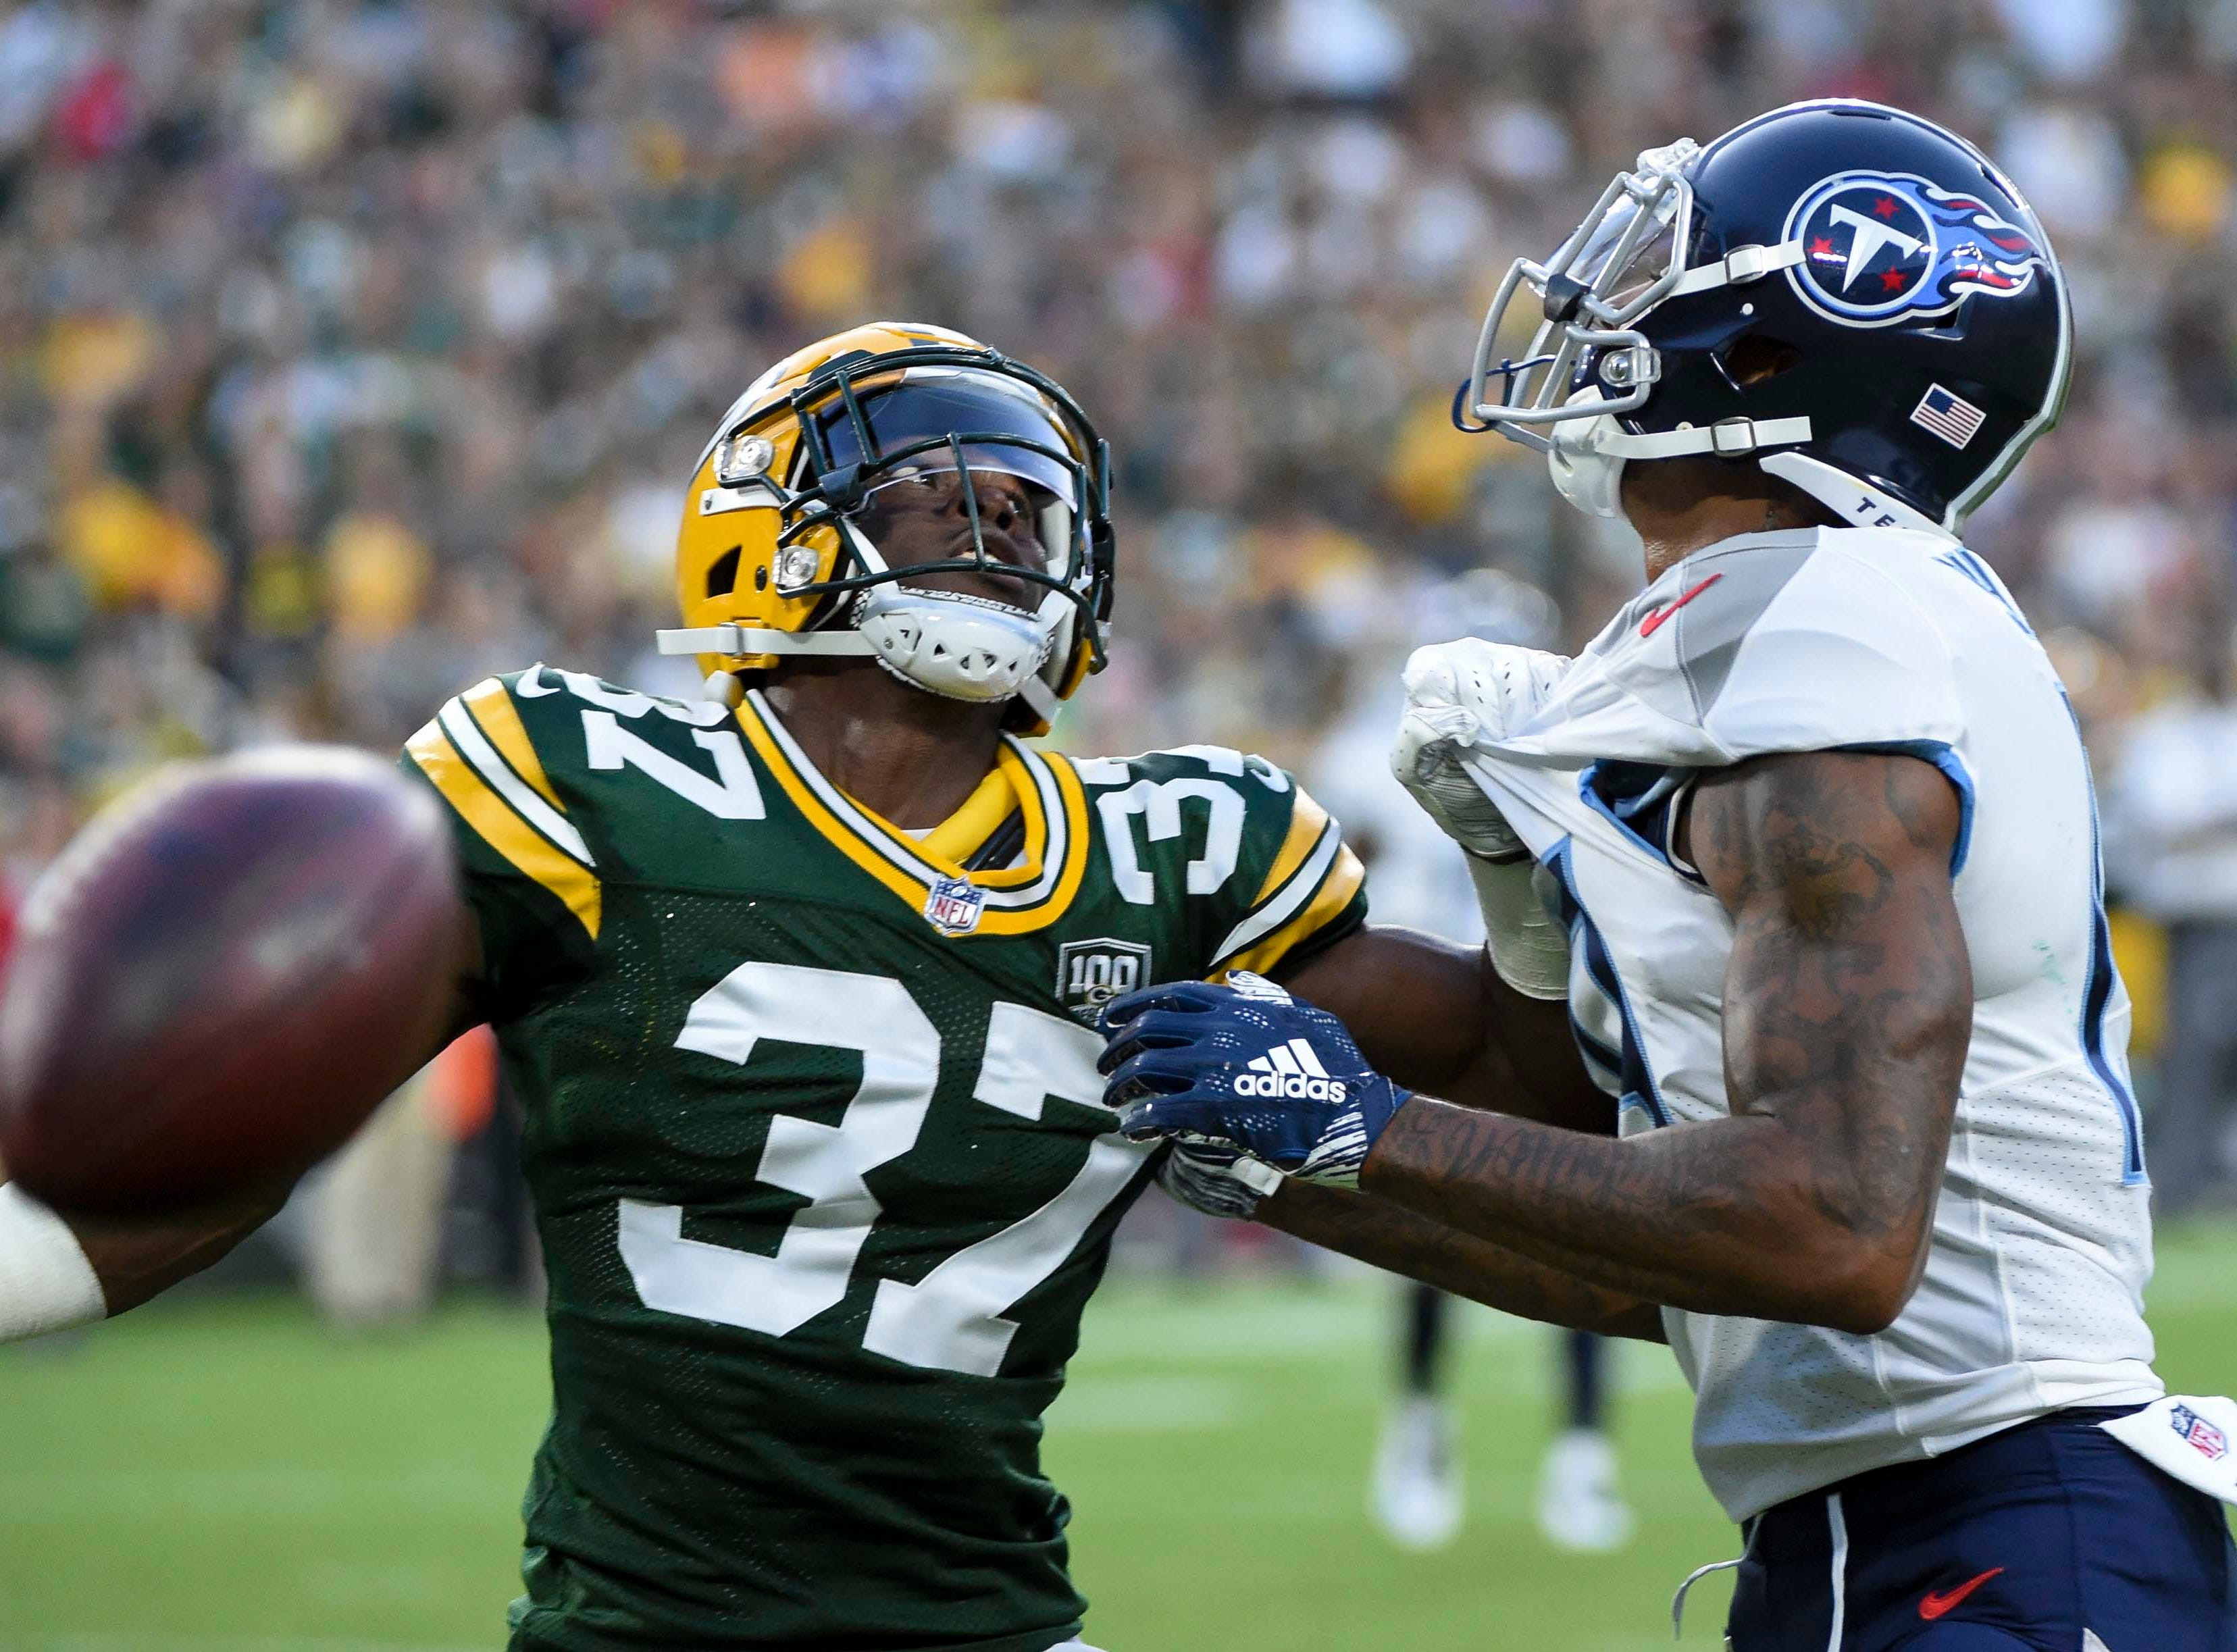 Aug 9, 2018; Green Bay, WI, USA; Green Bay Packers cornerback Josh Jackson (37) keeps Tennessee Titans wide receiver Tajae Sharpe (19) away from a pass in the second quarter at Lambeau Field.